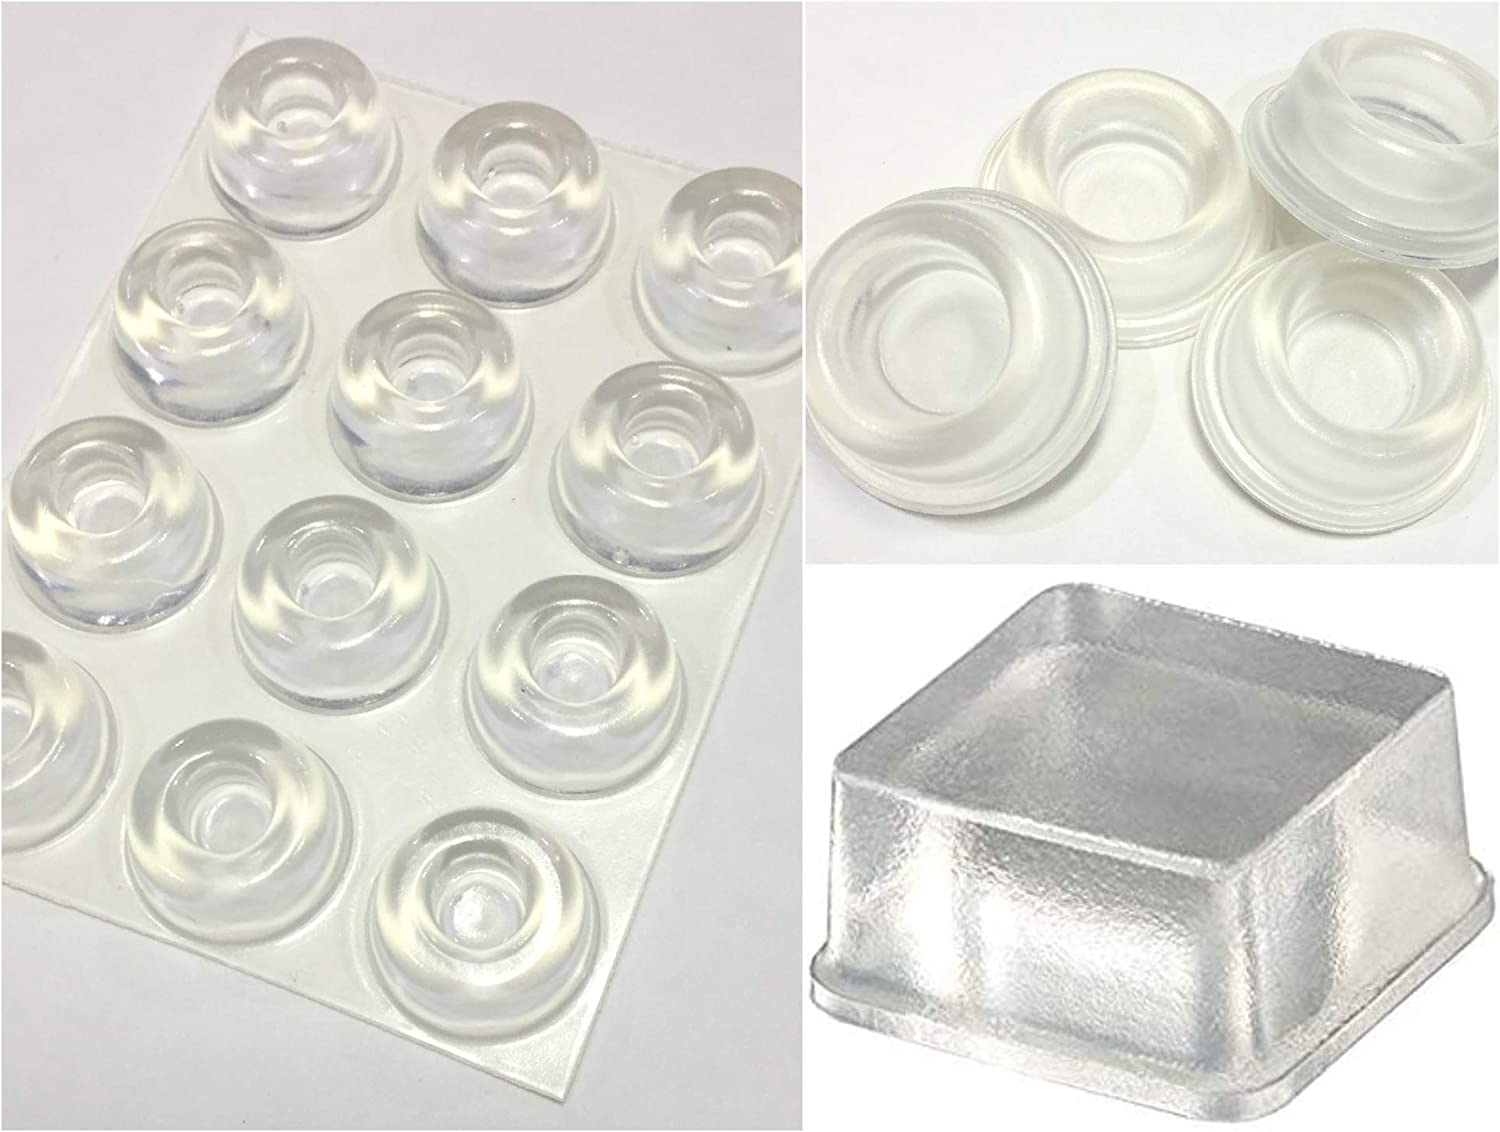 Combo of 12 Clear Small Door Knob Bumpers + 4 Clear Large Door Stopper Bumpers + 20 Clear Tall Square Bumpers for Electronics, Wall Protectors, Furniture, Appliances